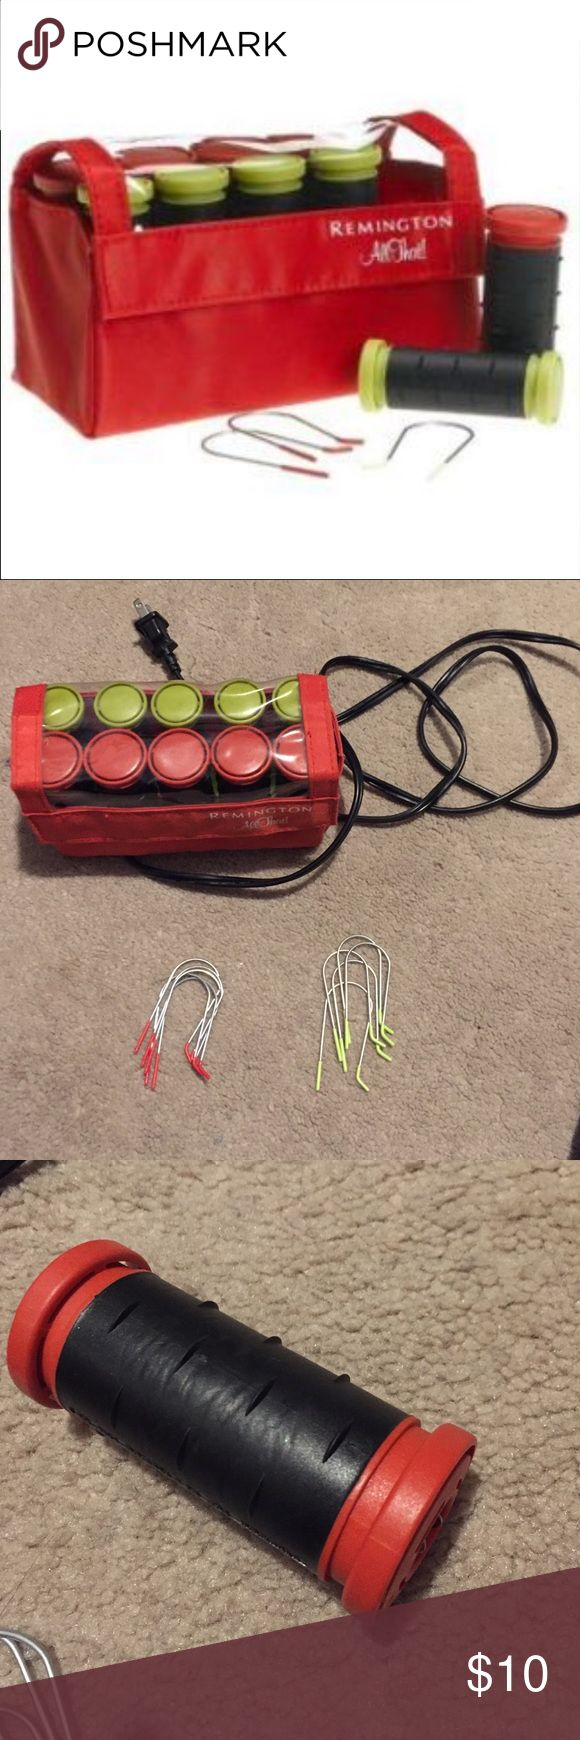 Remington All That hot curler/rollers Electric Remington electric hair rollers with pins to hold roller in hair. Used. Works great Remington Other